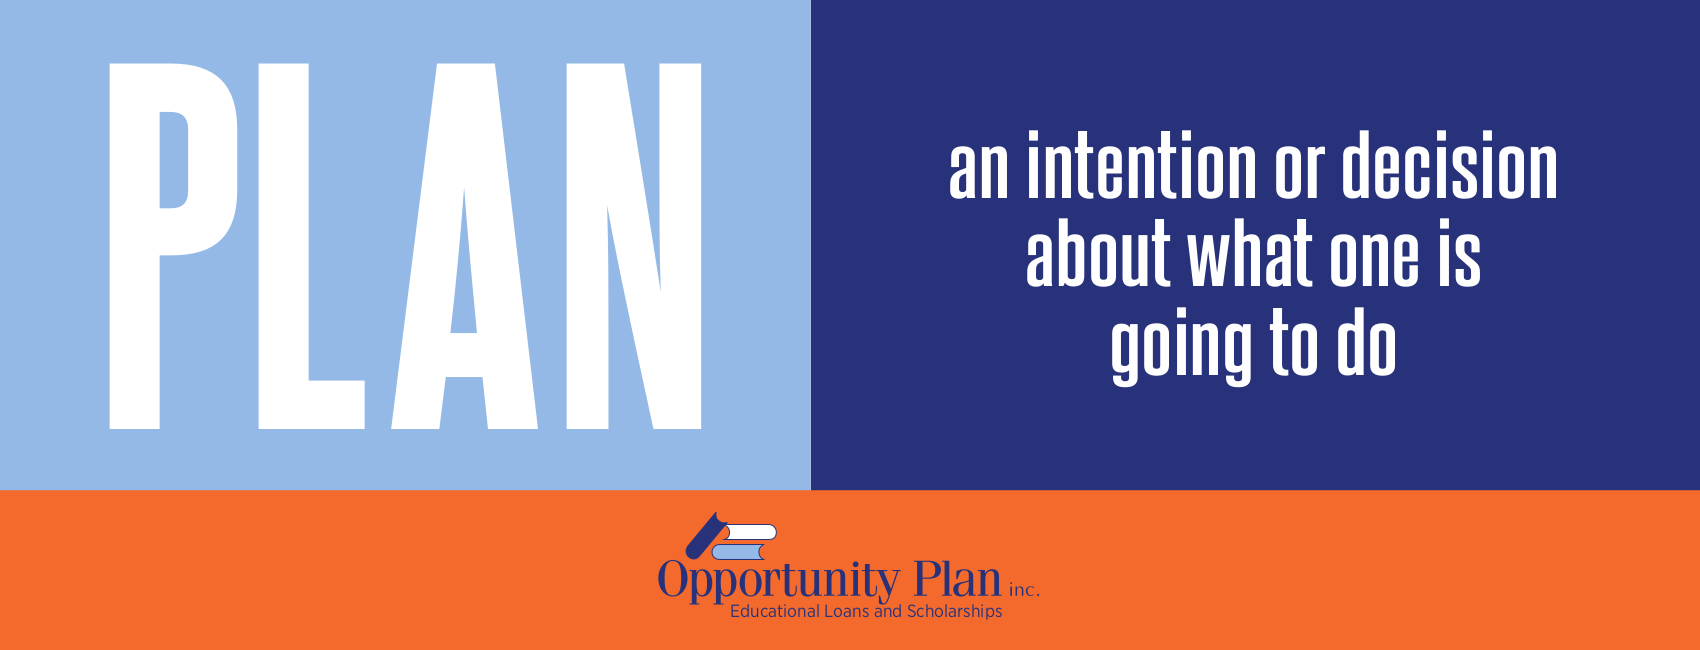 PLAN - an intention or decision about what one is going to do.